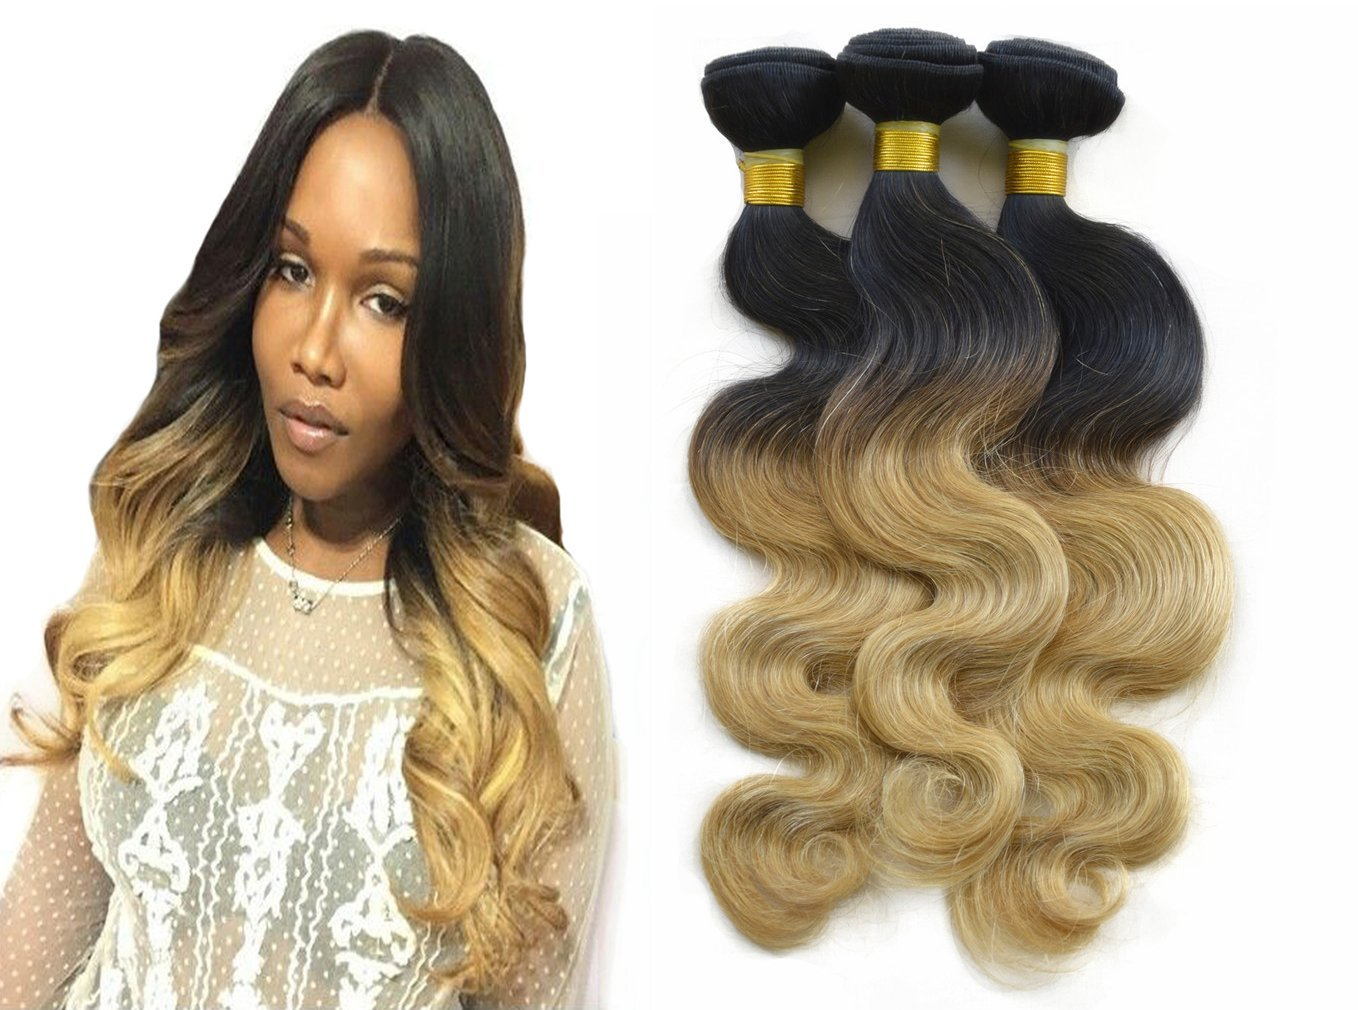 Buy Blonde Ombre Hair Bundles Babe Hair 3 Pieces Cheap 10 26 Inch